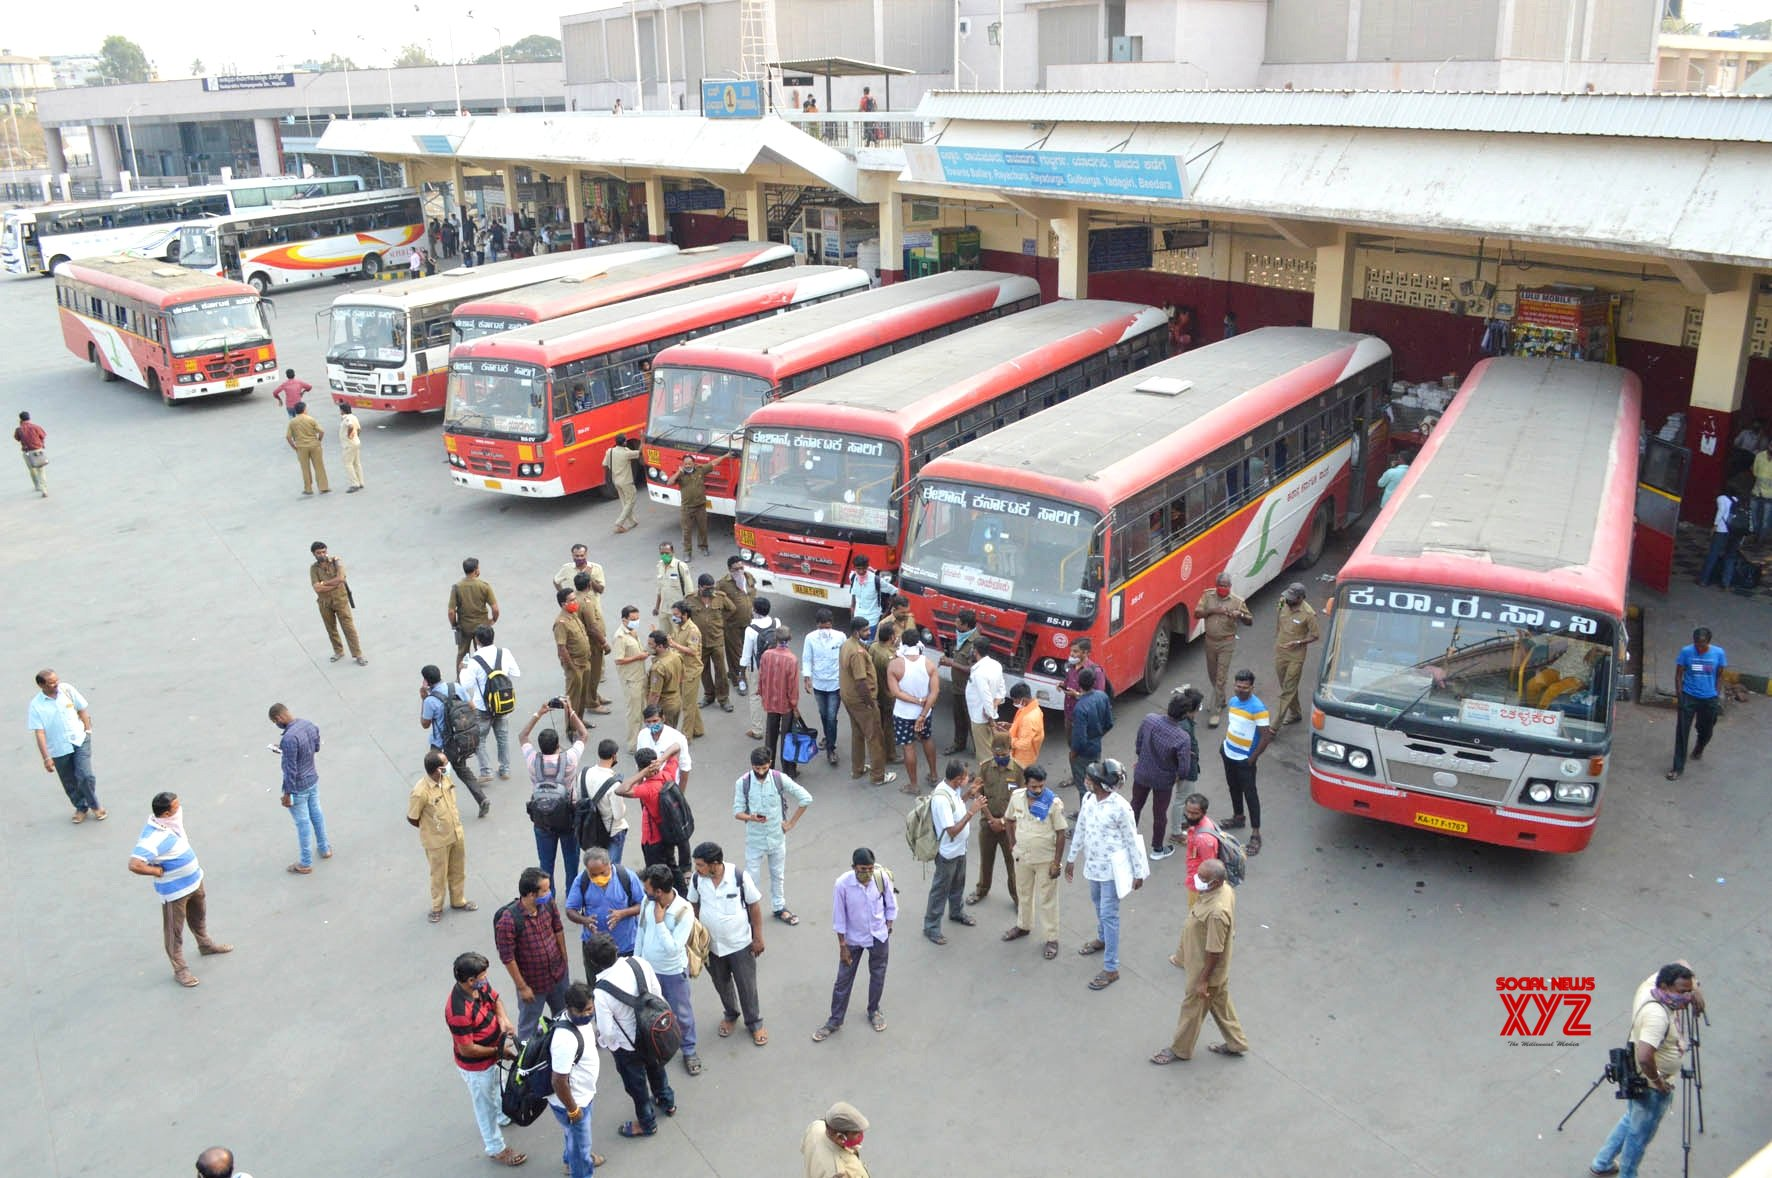 Bus strike: Normal life disrupted in Karnataka